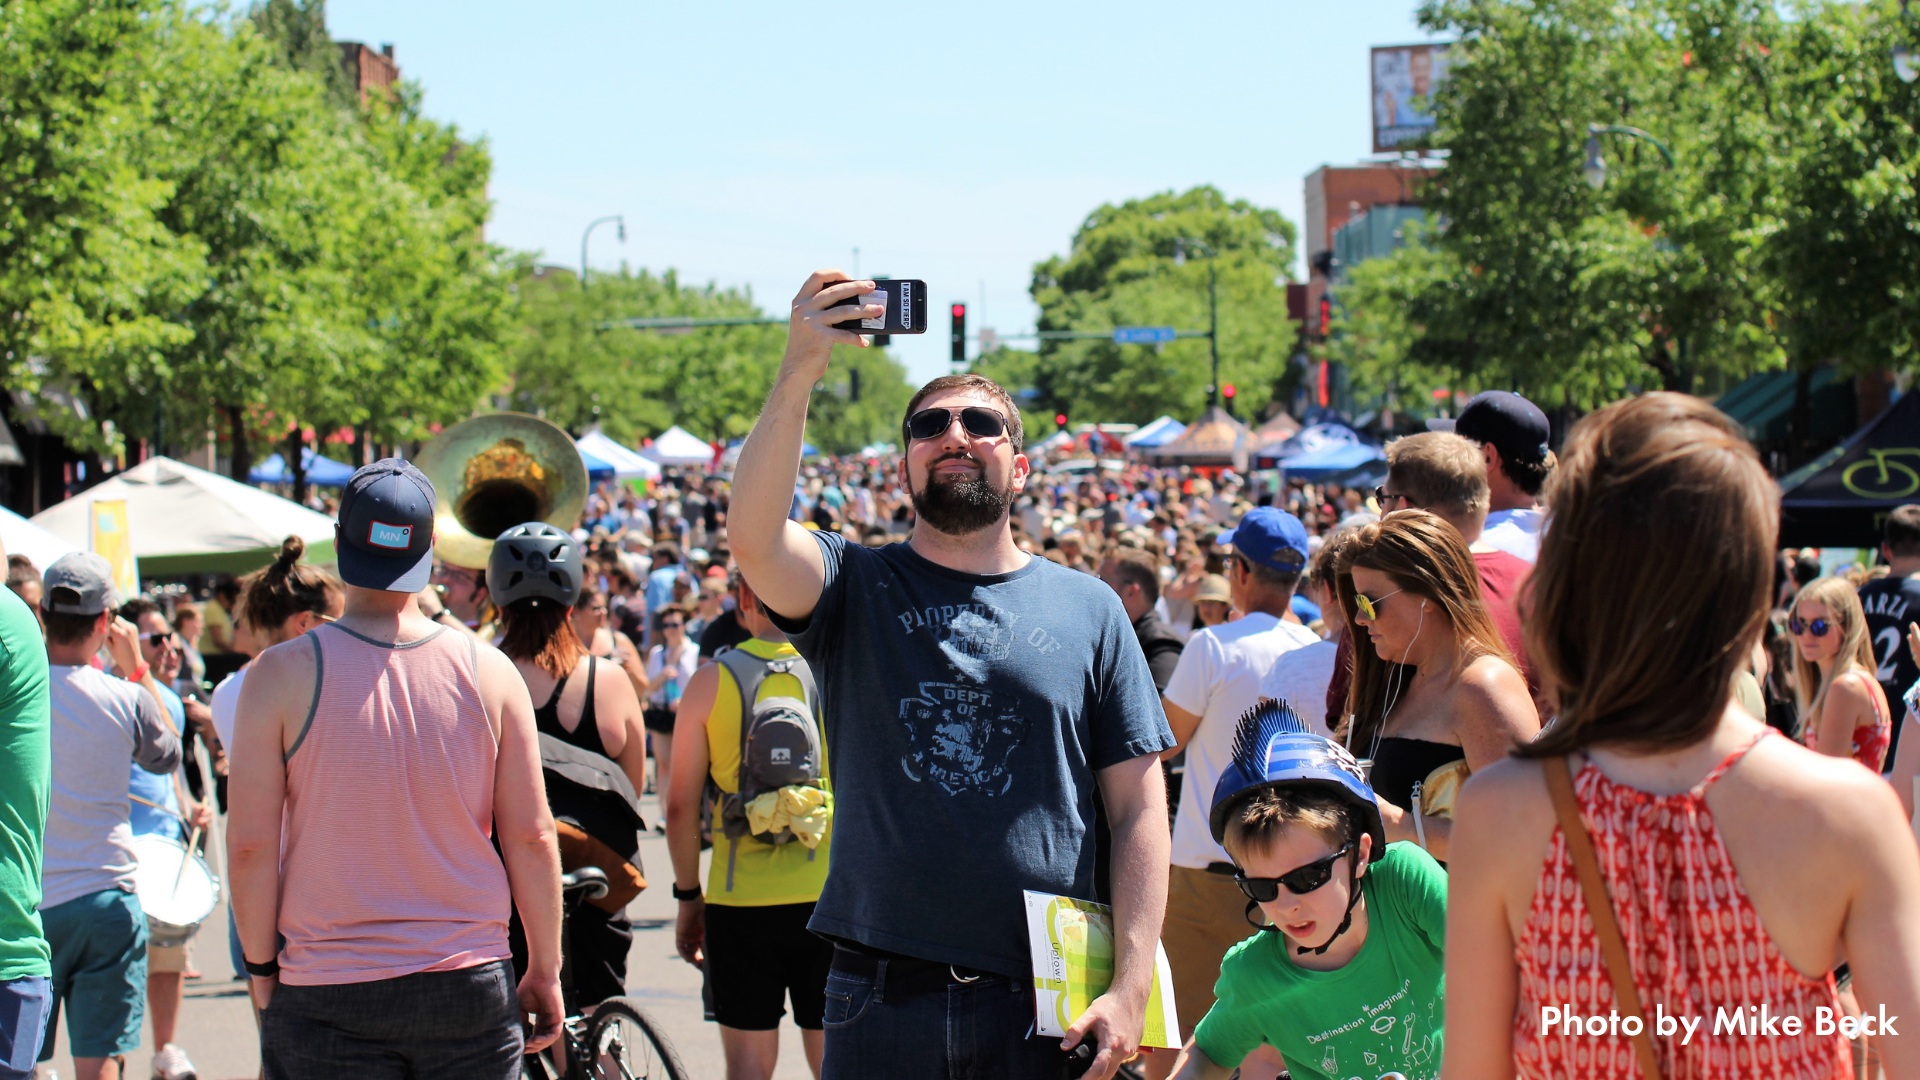 A person takes a selfie in the middle of a large crowd at Open Streets Lyndale